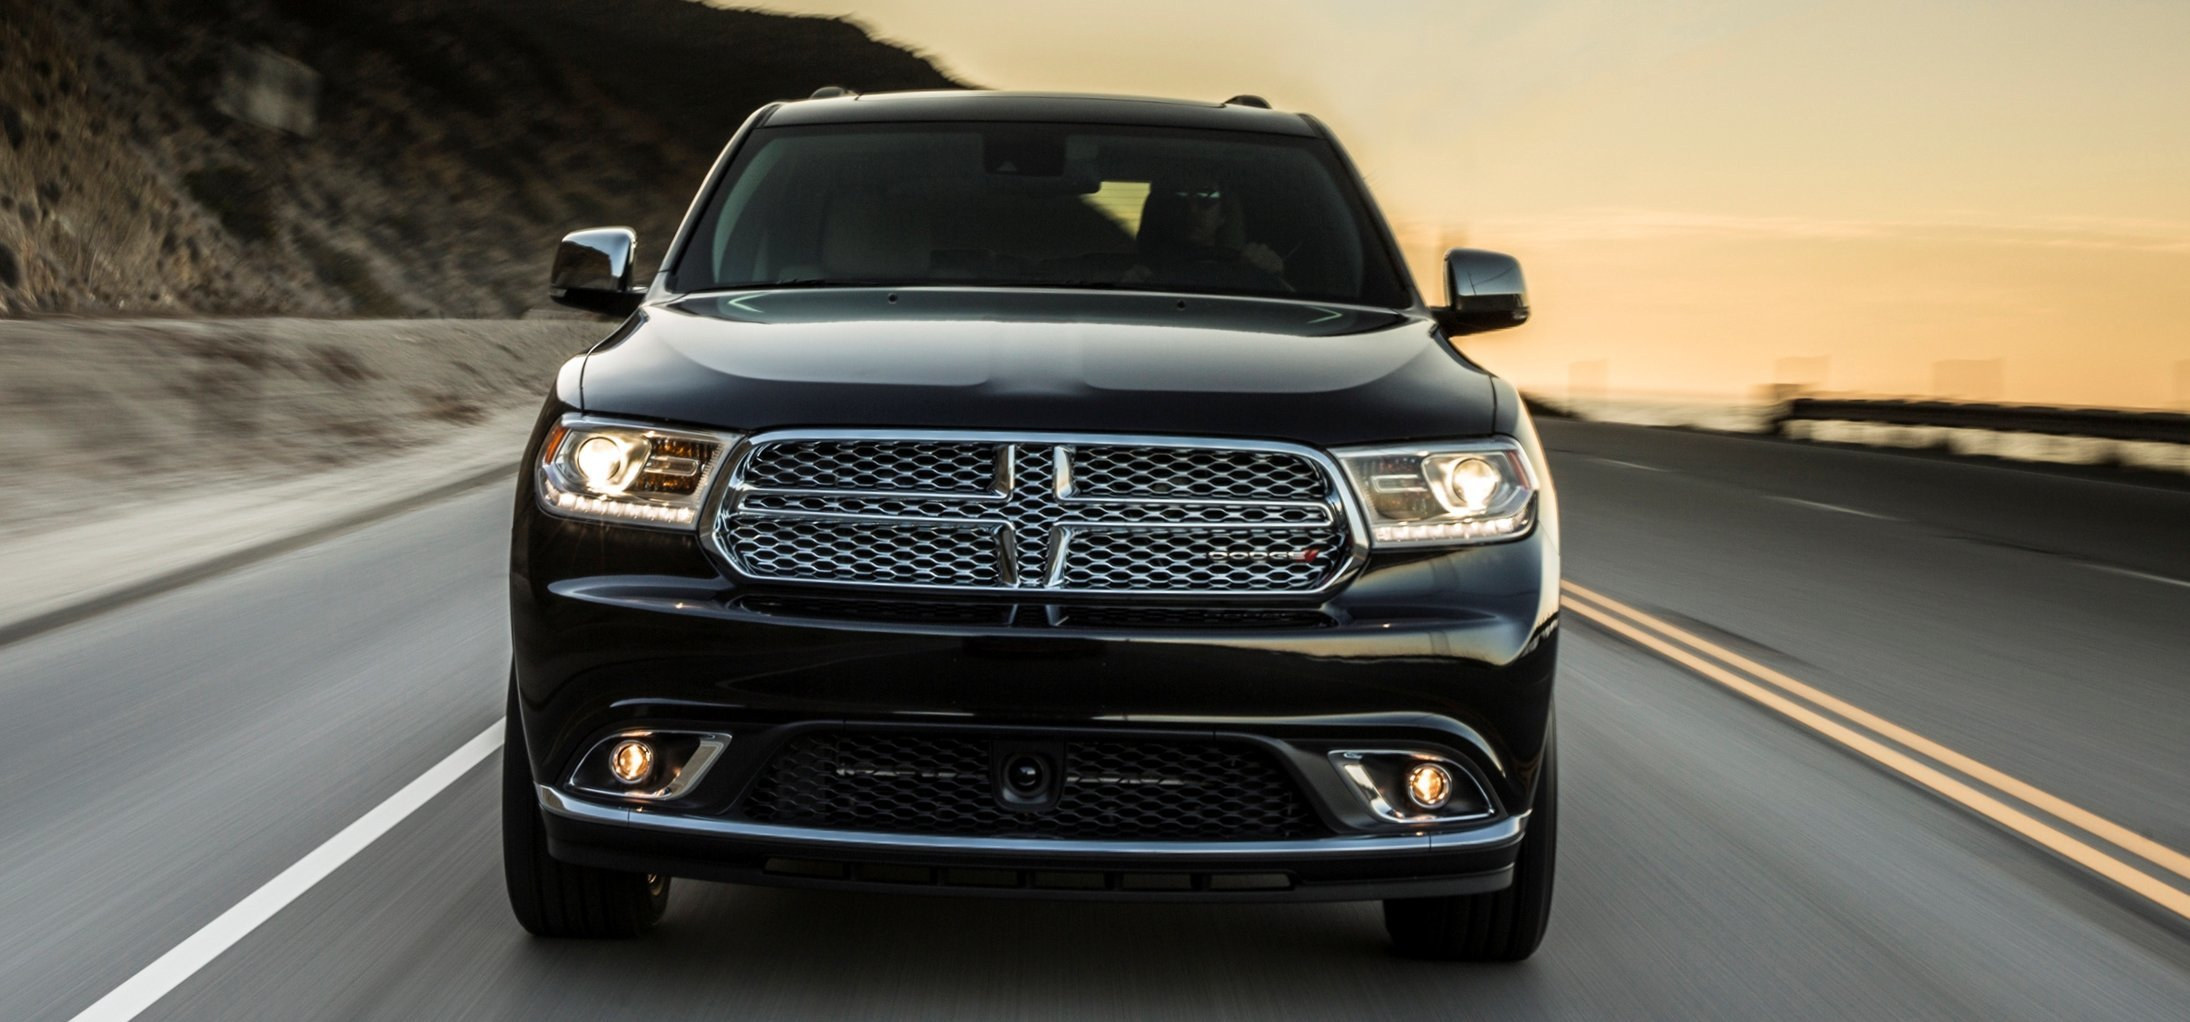 2014 Dodge Durango Has Coolest Suv Stance Led Lights And